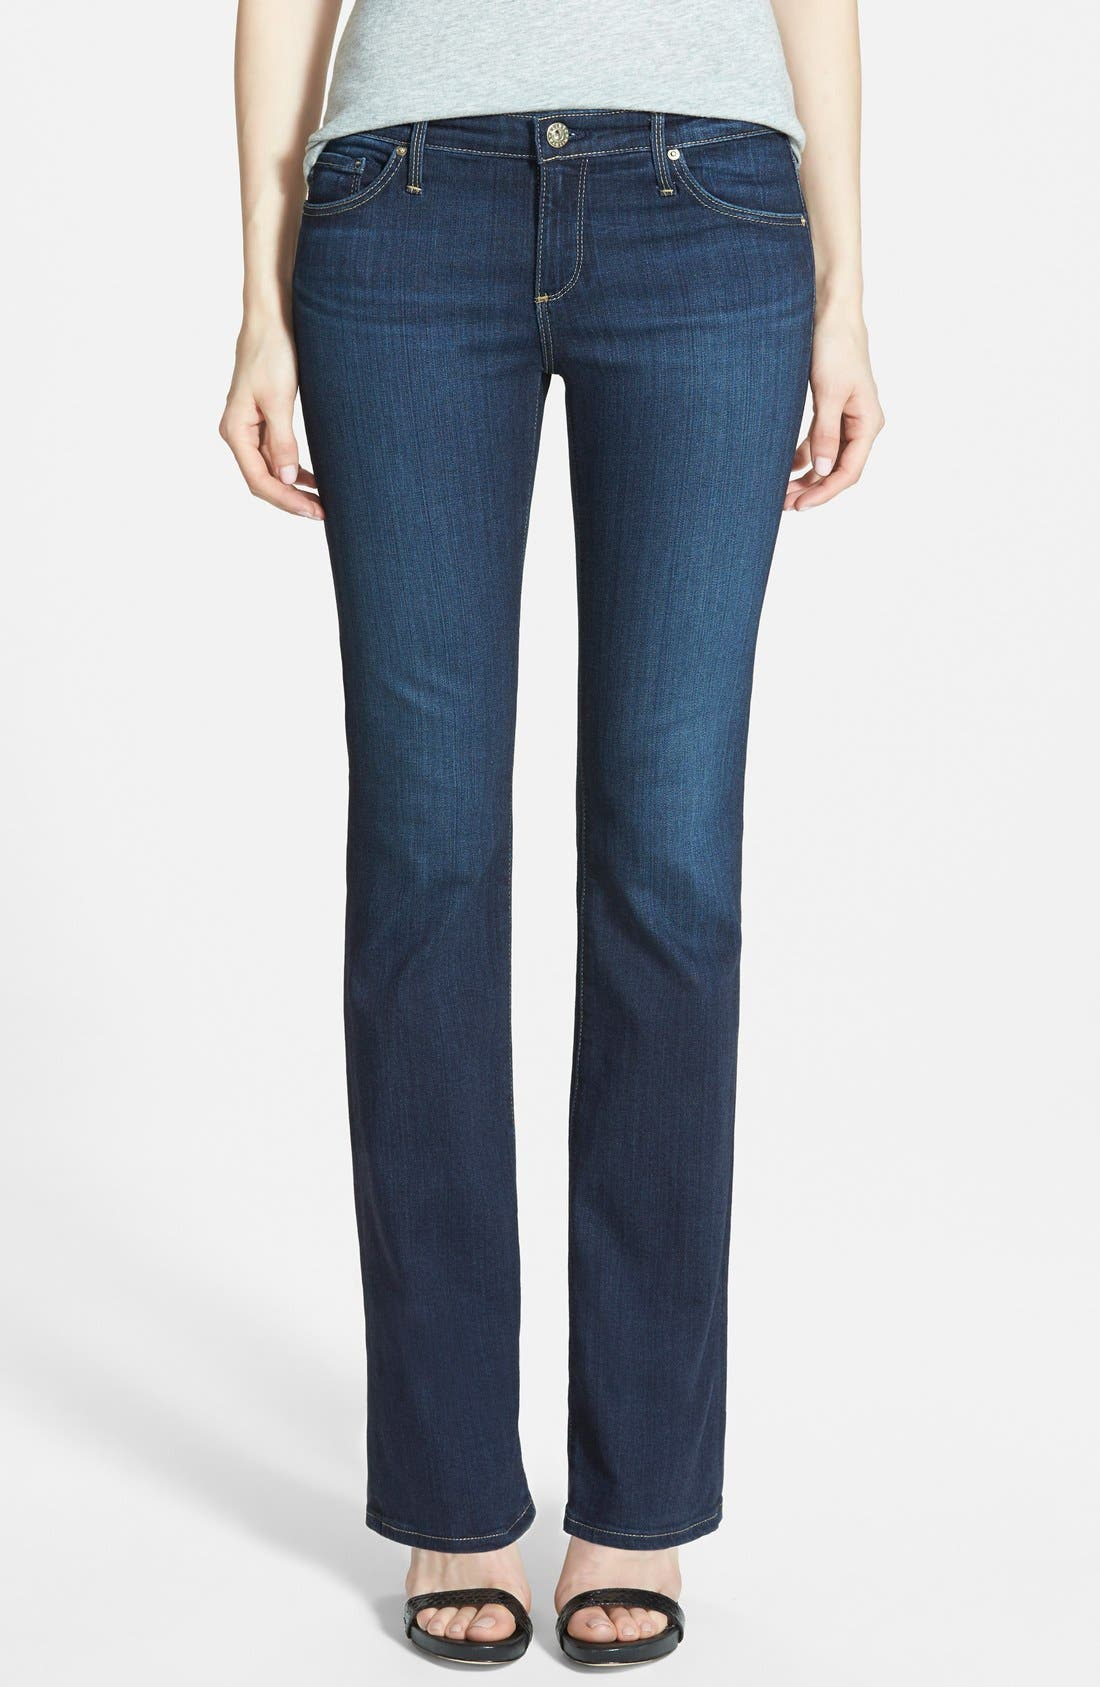 AG, 'The Angelina' Bootcut Jeans, Main thumbnail 1, color, 400